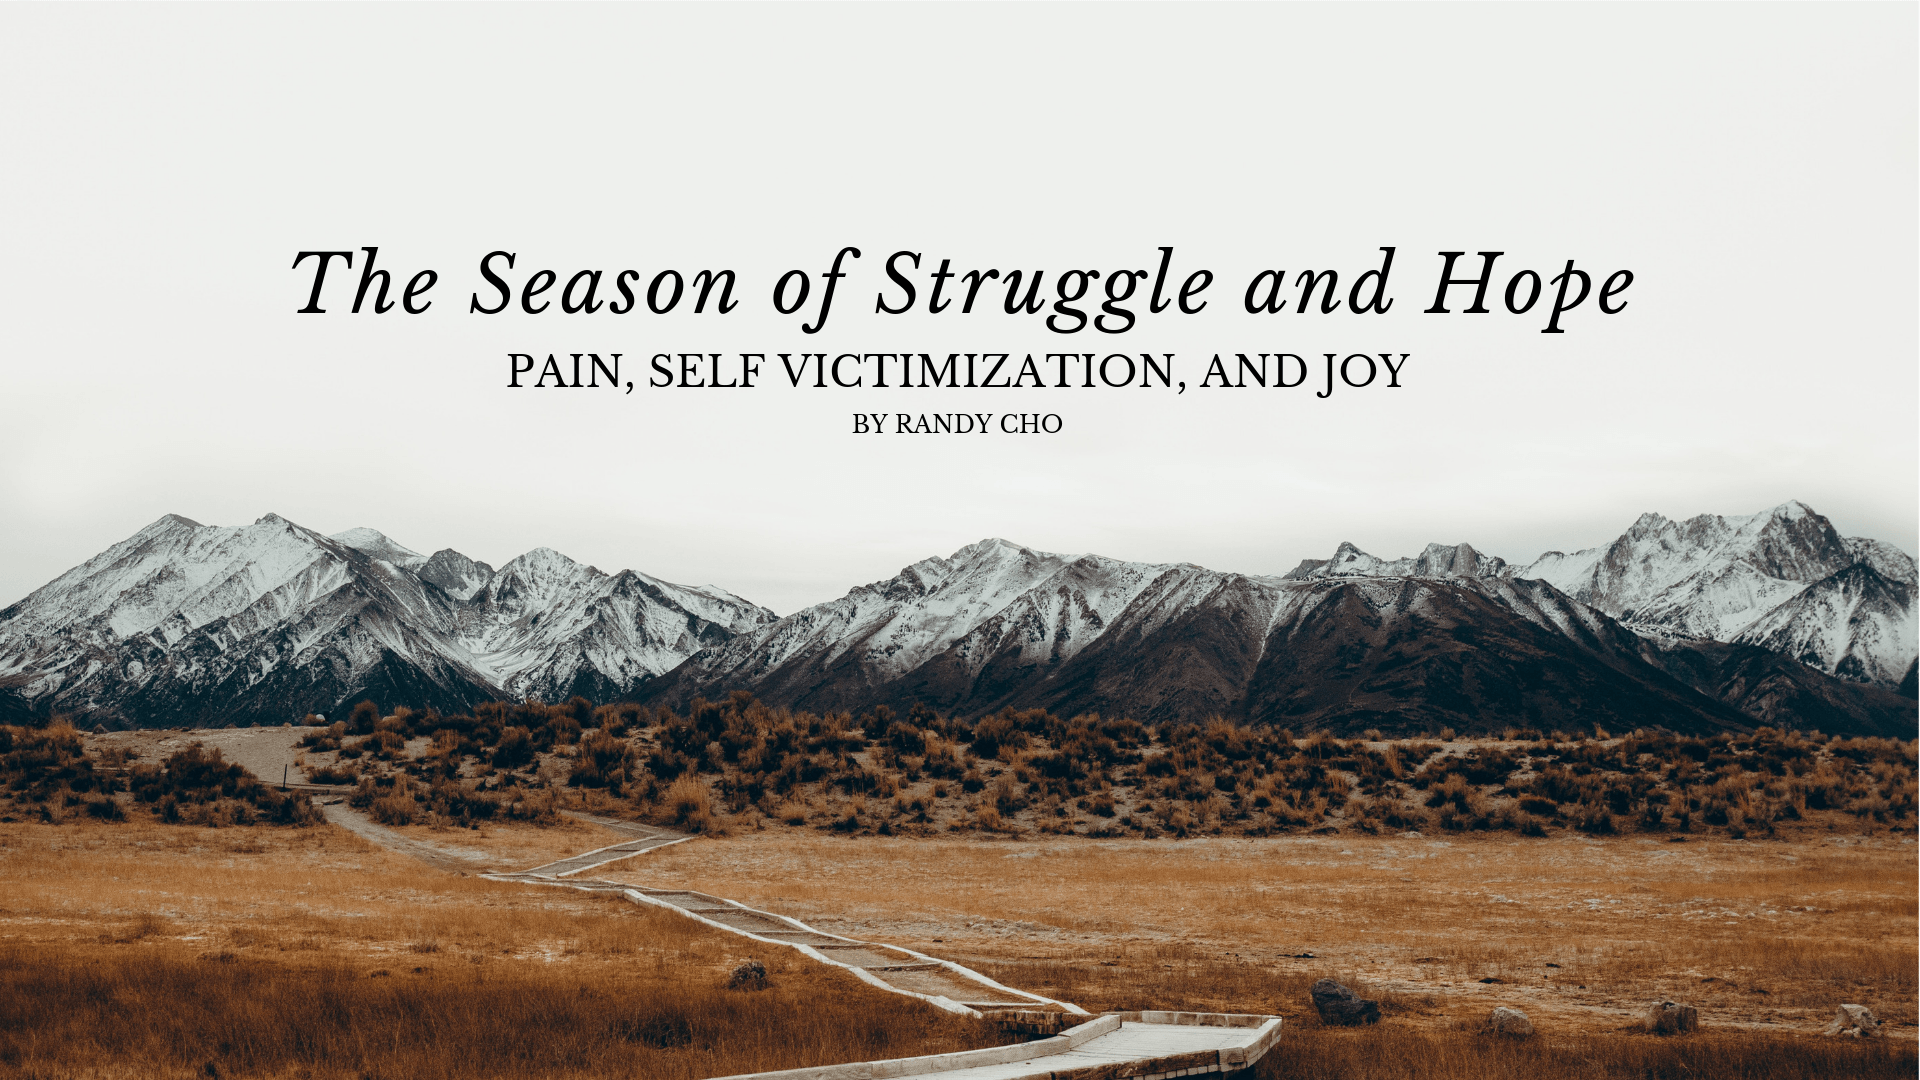 The Season of Struggle and Hope by Randy Cho